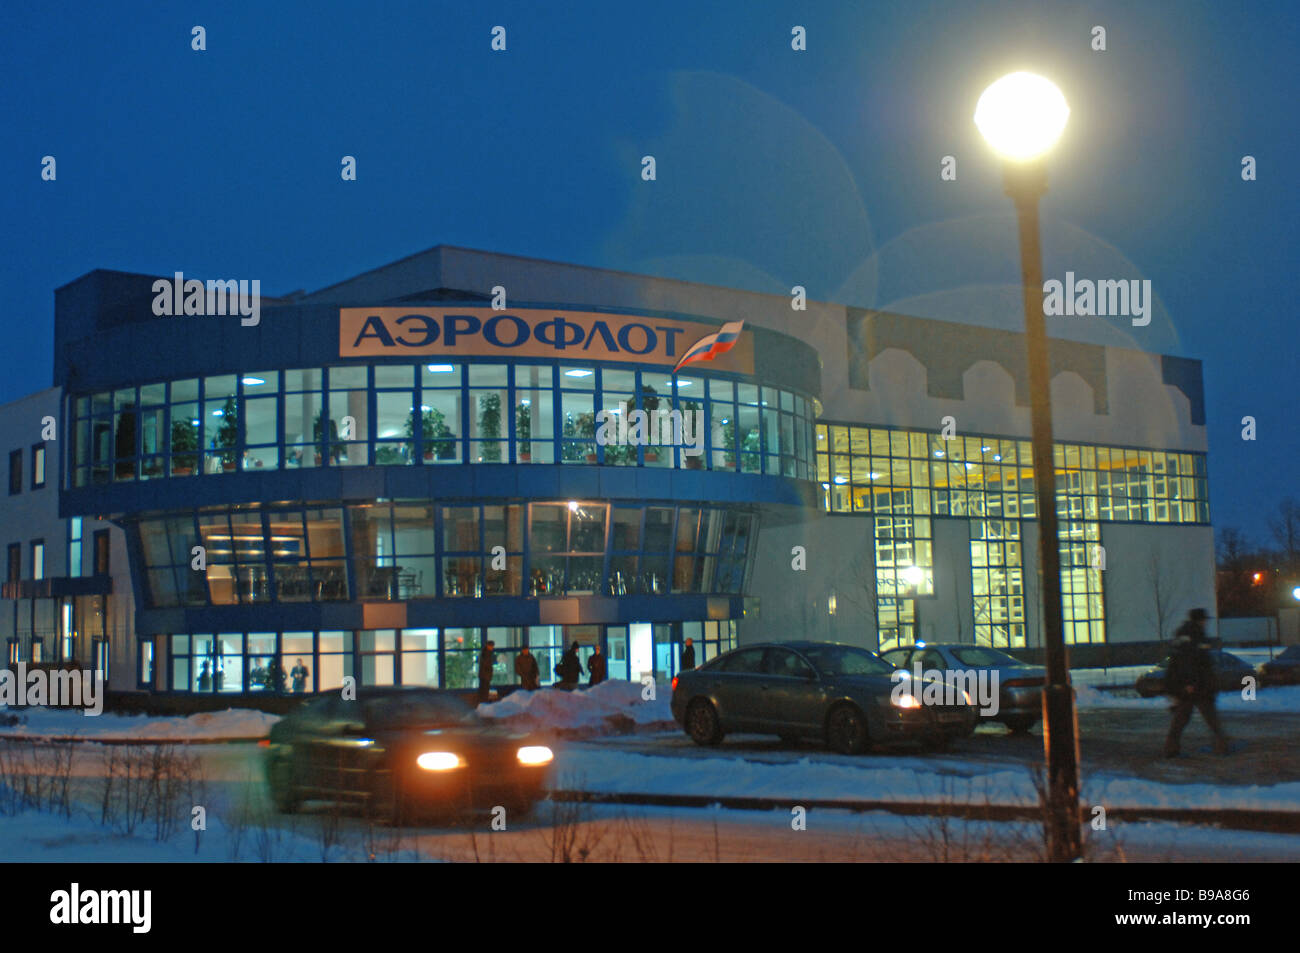 Simulator facility of OAO Aeroflot carrier s aviation personnel training center - Stock Image